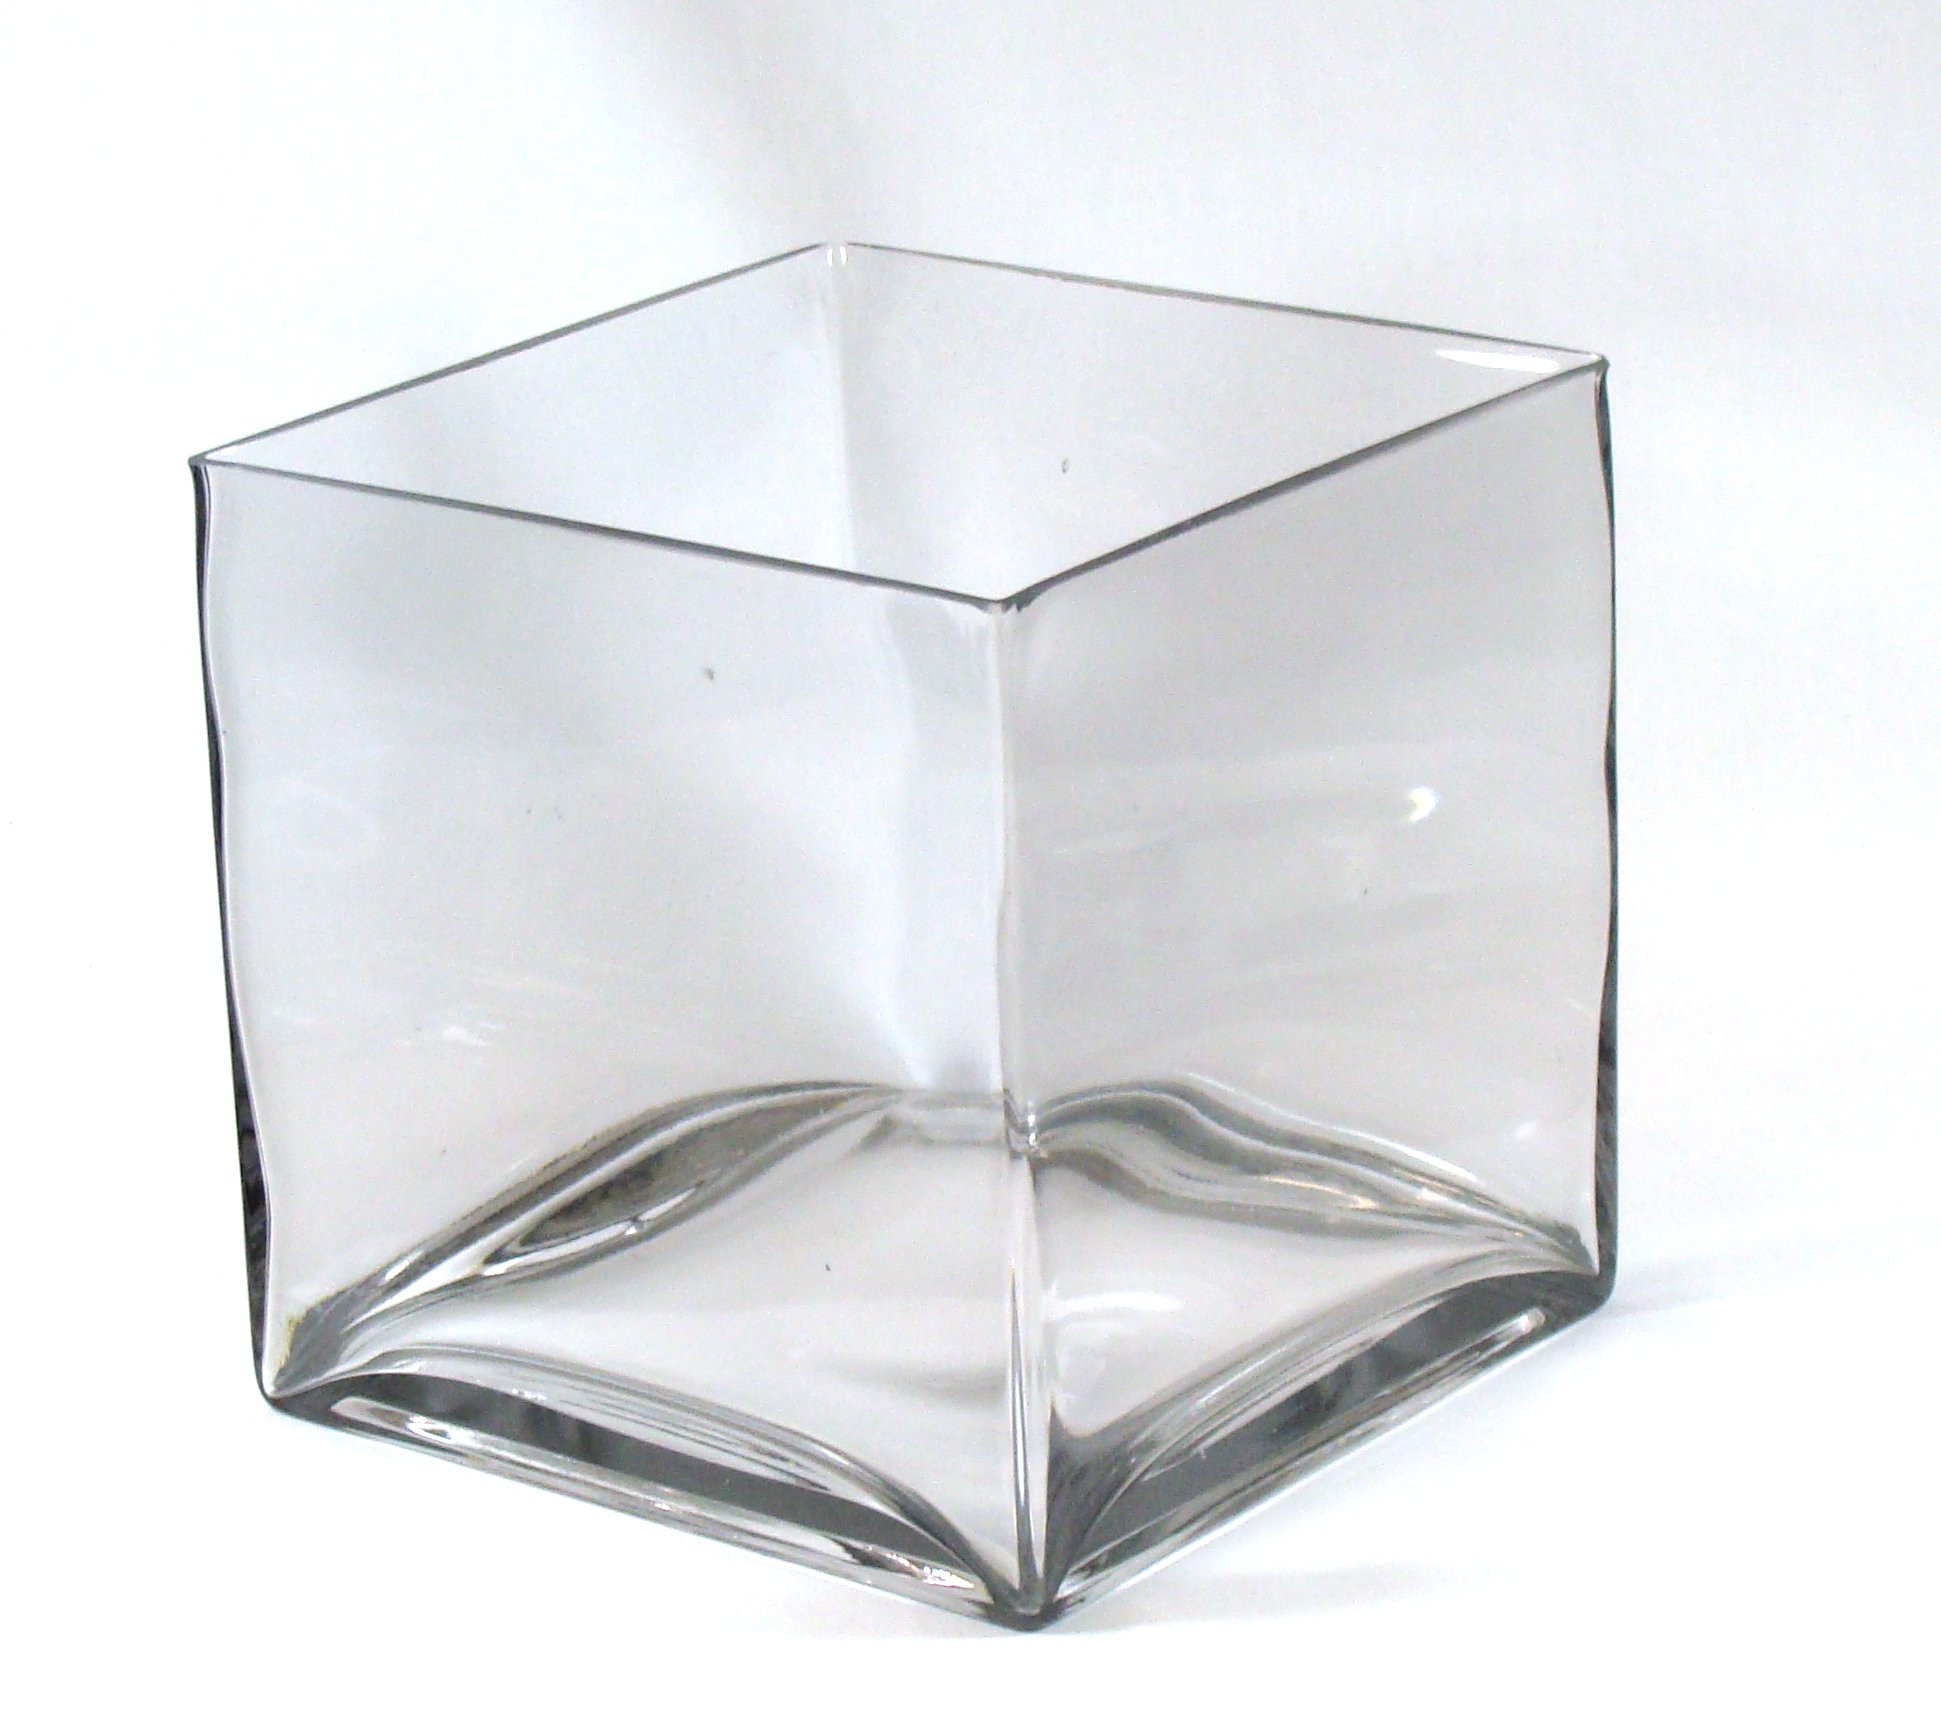 5 inch square glass vases of buy 8 inch round large glass vase 8 clear cylinder oversize inside 8 square large glass vase 8 inch clear cube oversize centerpiece 8x8x8 candleholder